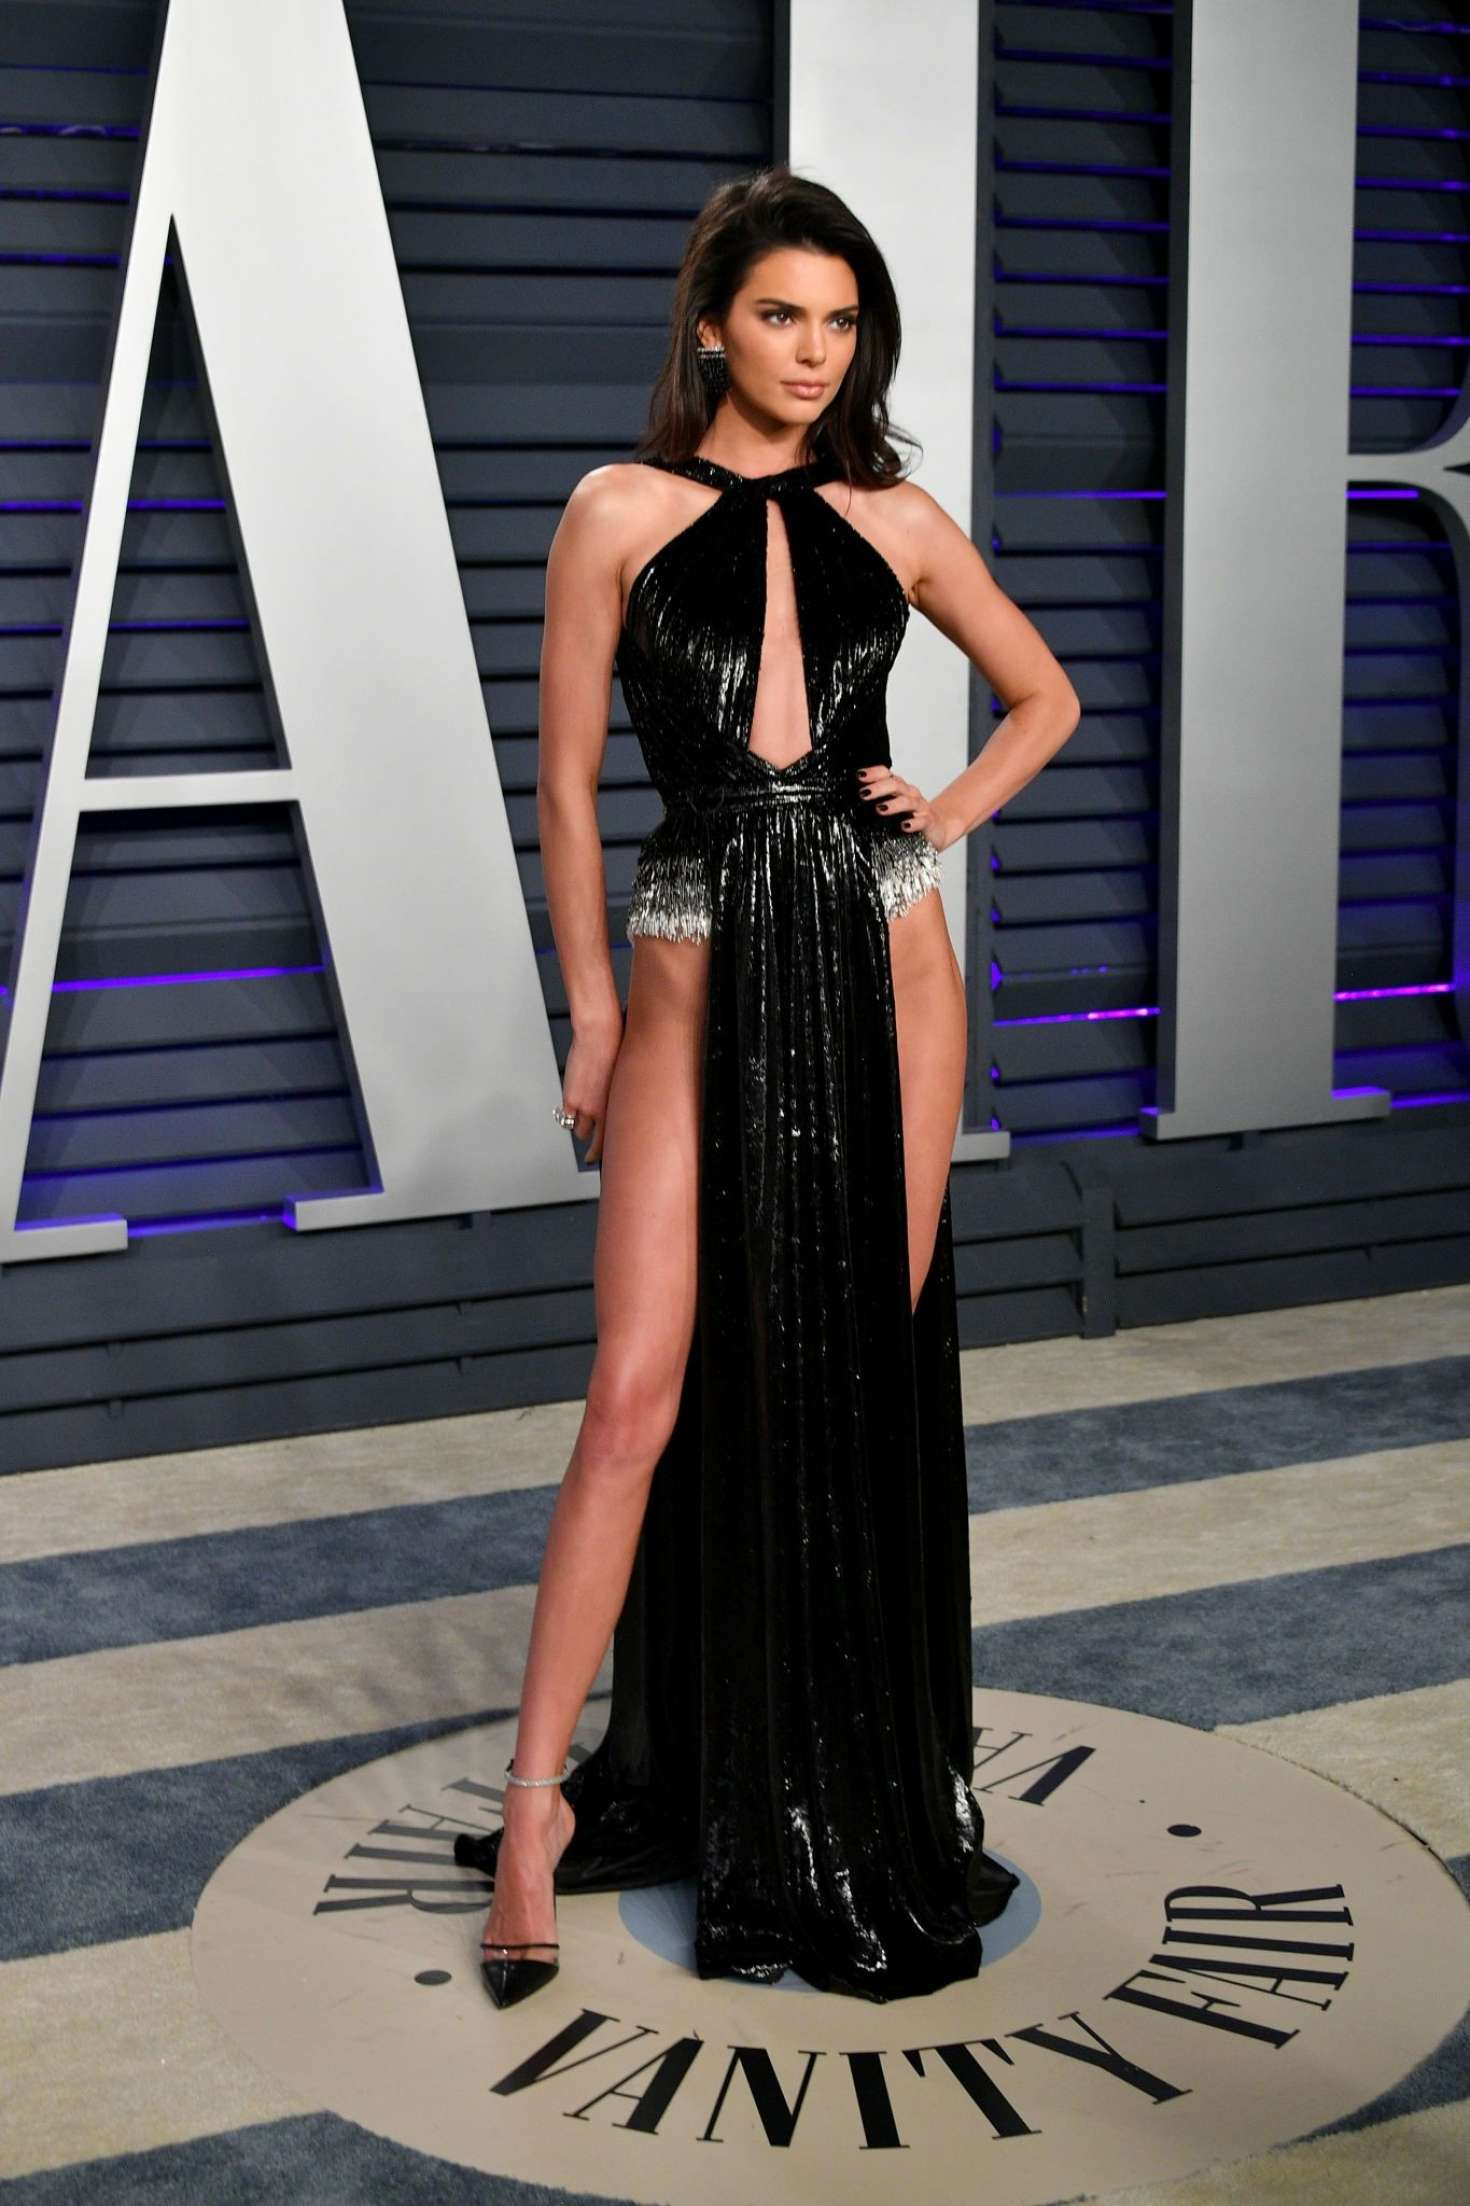 Kendall Jenner poses for a camera at Vanity Fair Oscar Party in Beverly Hills, 2019